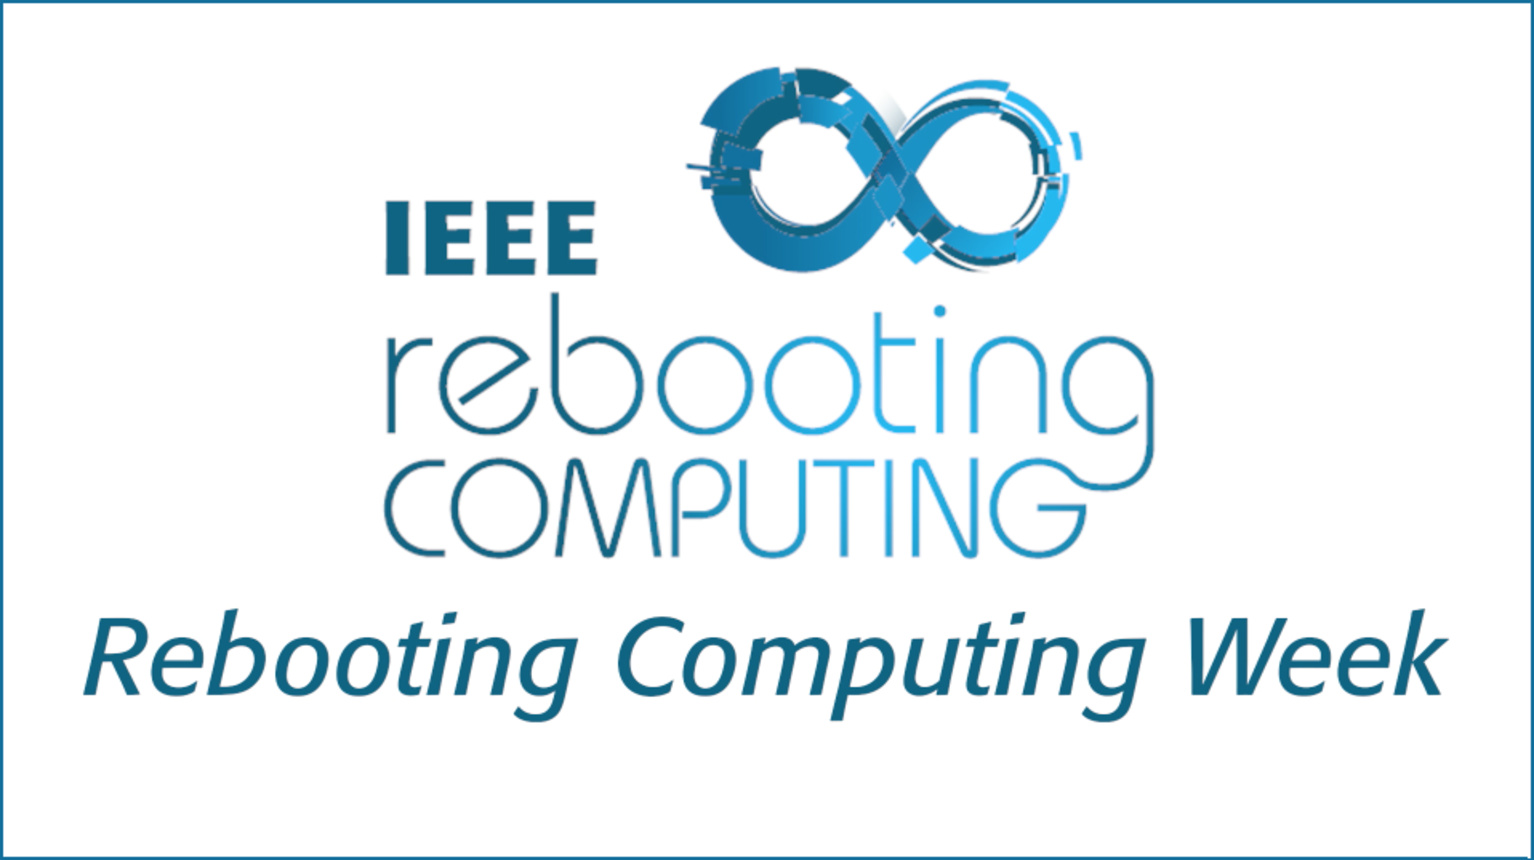 Recap of the 2017 International Conference on Rebooting Computing